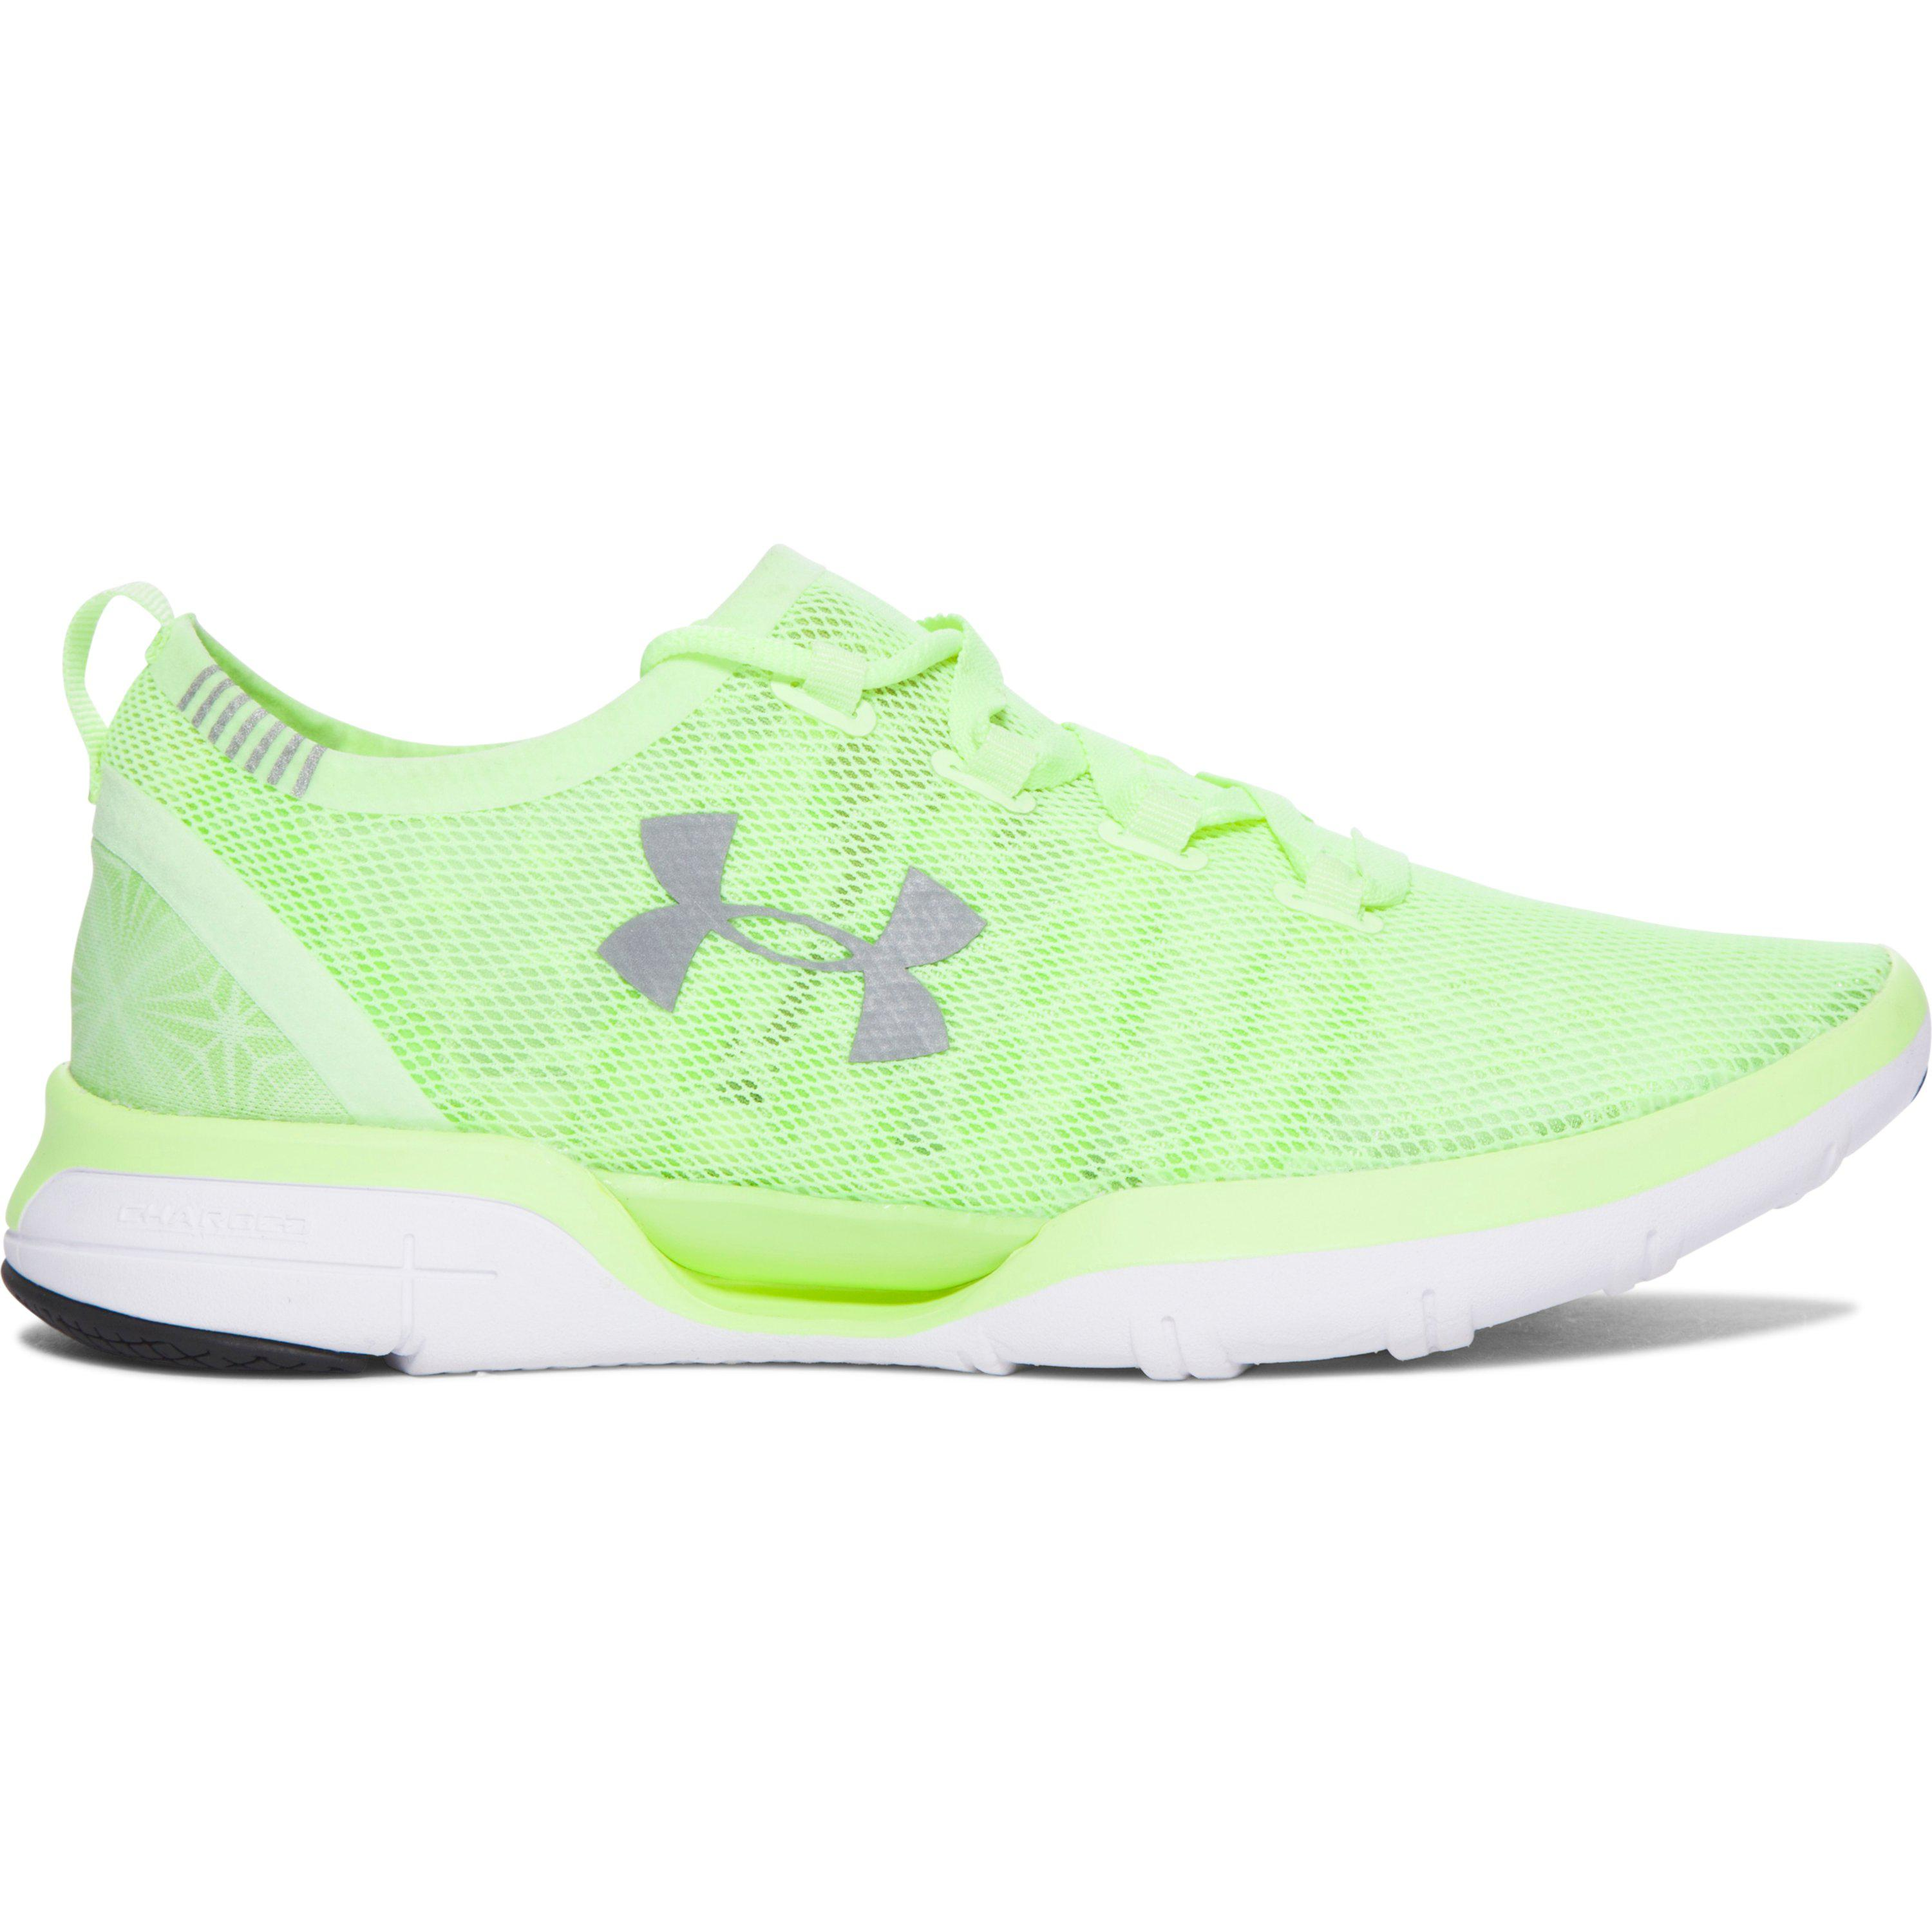 ... b03b6 a6c83 Lyst - Under Armour Womens Ua Charged Coolswitch Running  Sho designer fashion 8f3e24fb2